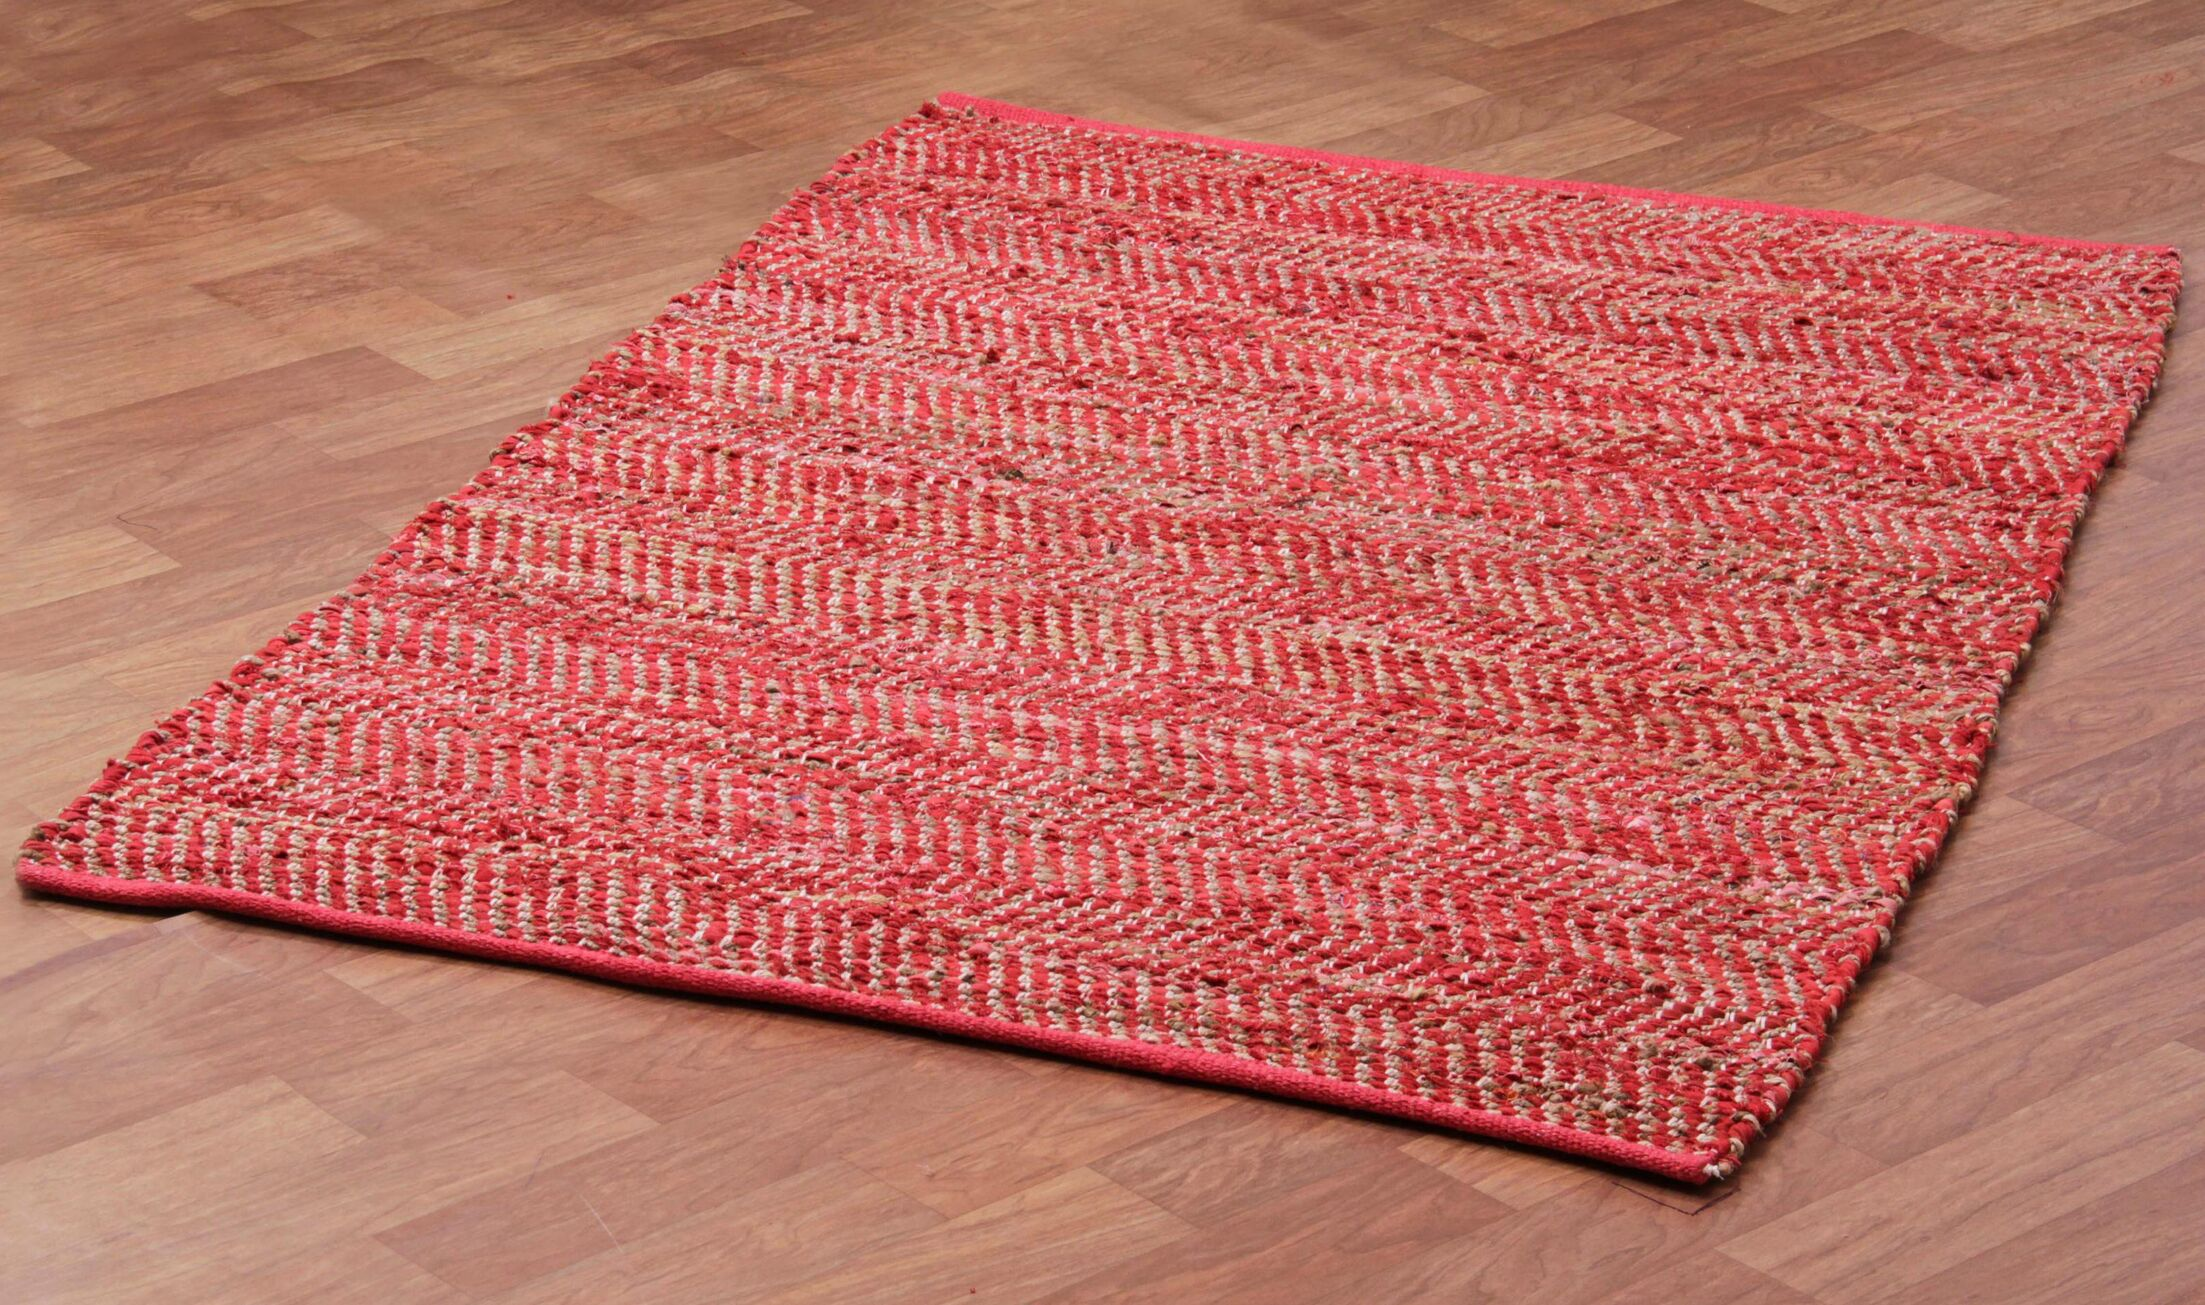 Synthia Hand Woven Cotton Red/Green/Tan Area Rug Rug Size: 8' x 10'